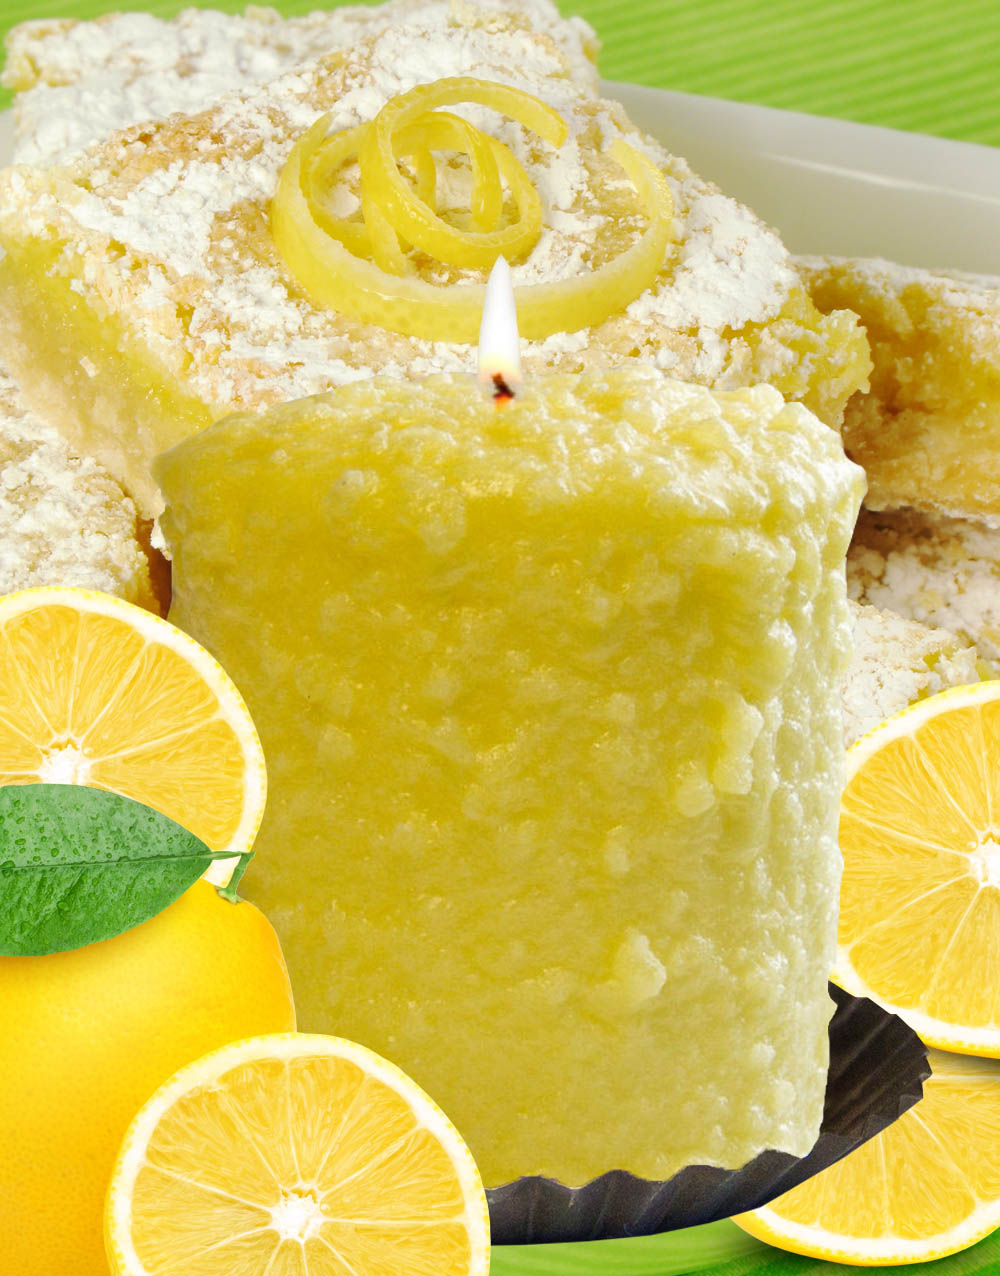 Lemon Bliss Hearth Candle